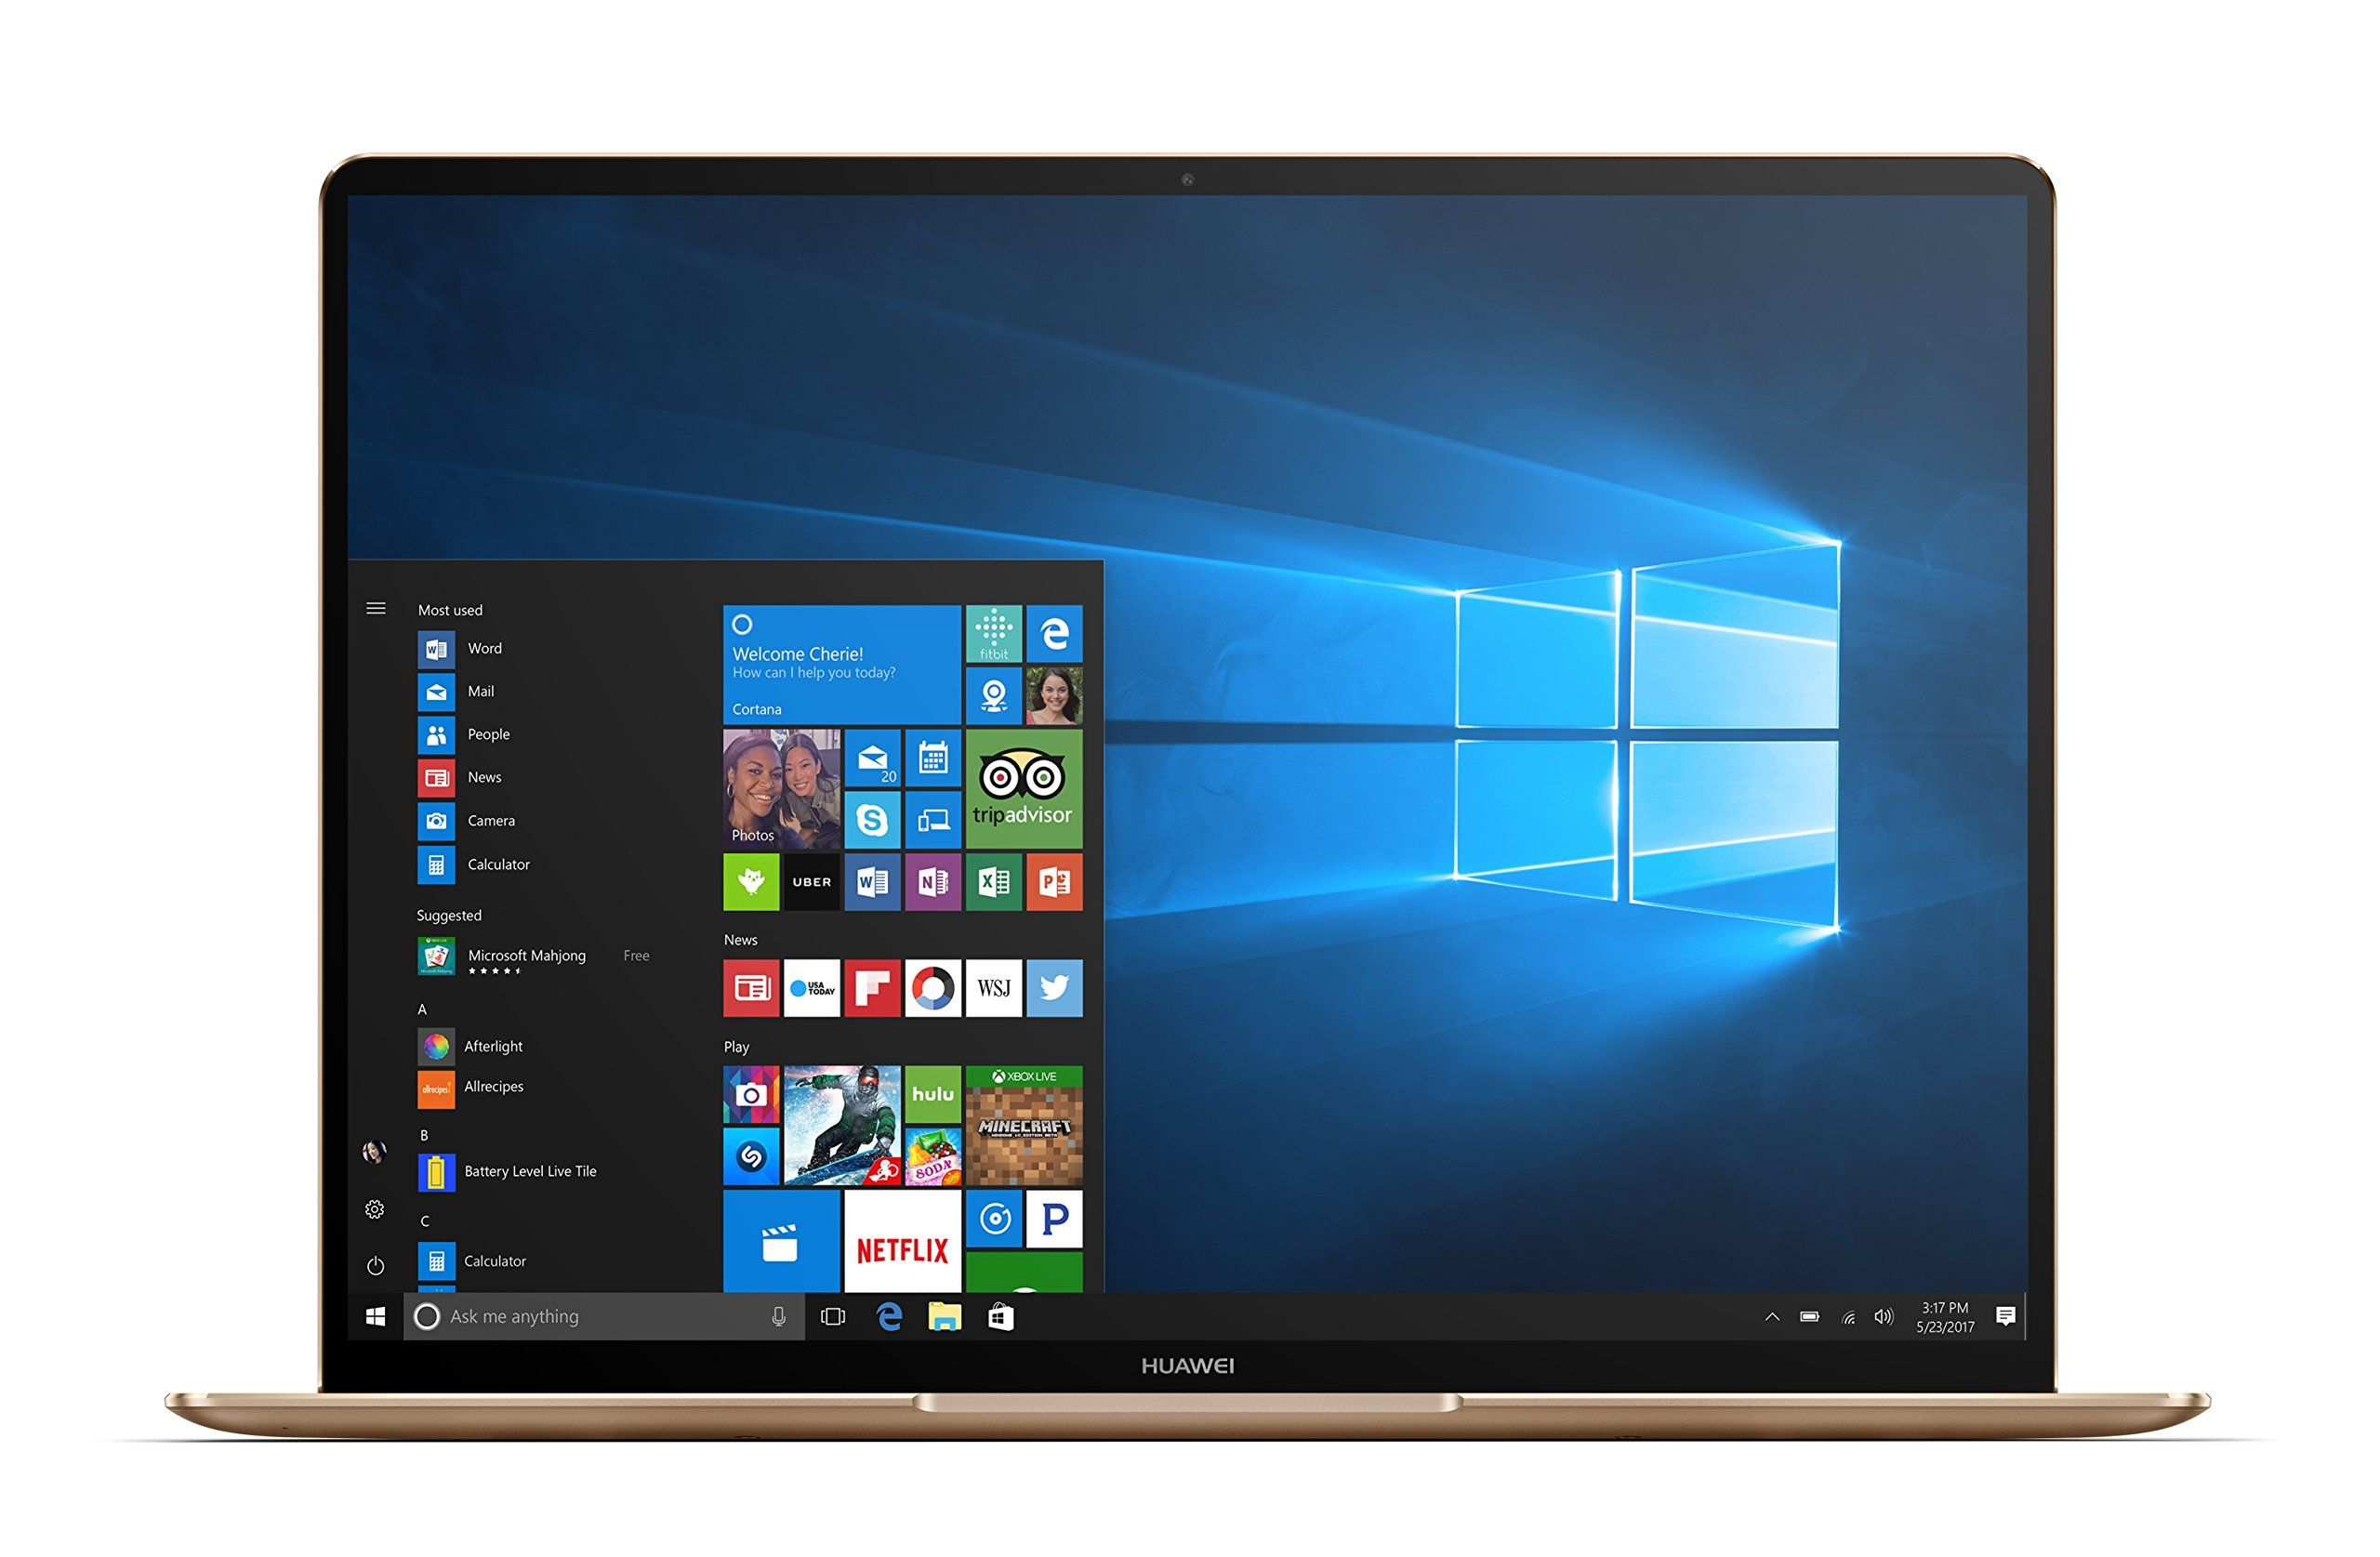 Huawei Matebook X Signature Edition 13 Laptop Office 365 Personal Included 8